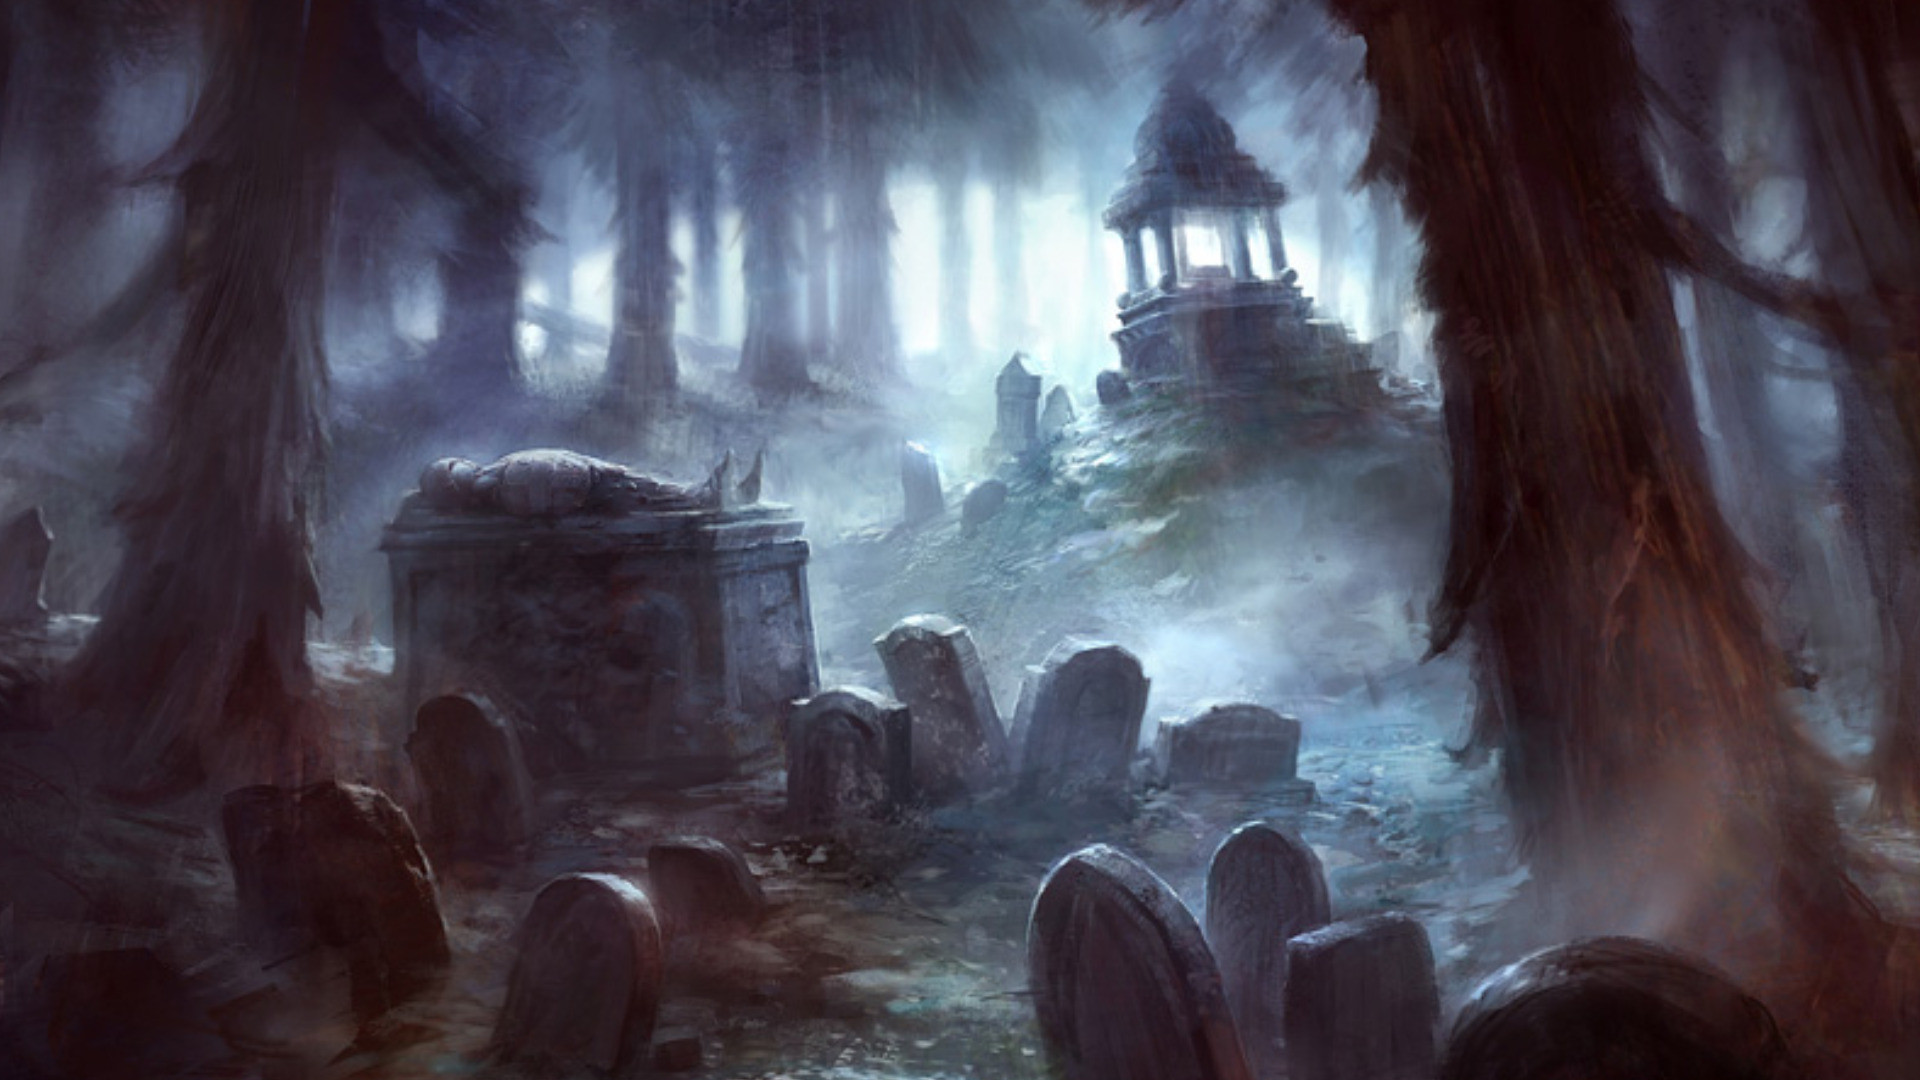 Explore and share Spooky Graveyard Wallpaper